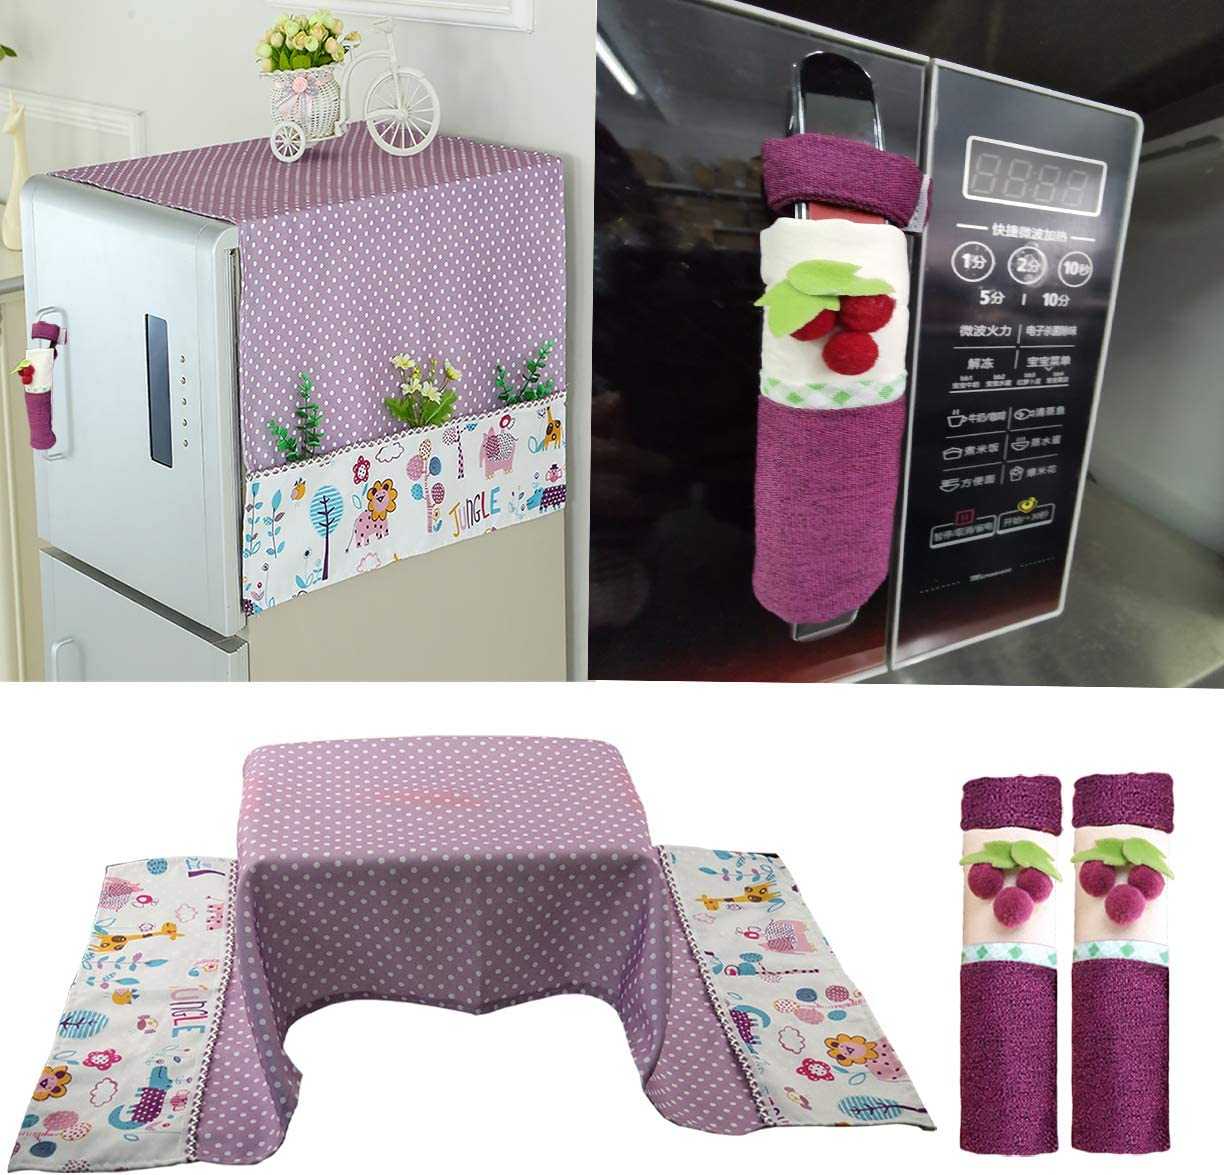 KEFAN Package of Fridge Dust Cover and Microwave Handle Cover Cotton Linen Cover for Washing Machine Oven Home Appliance (Purple)